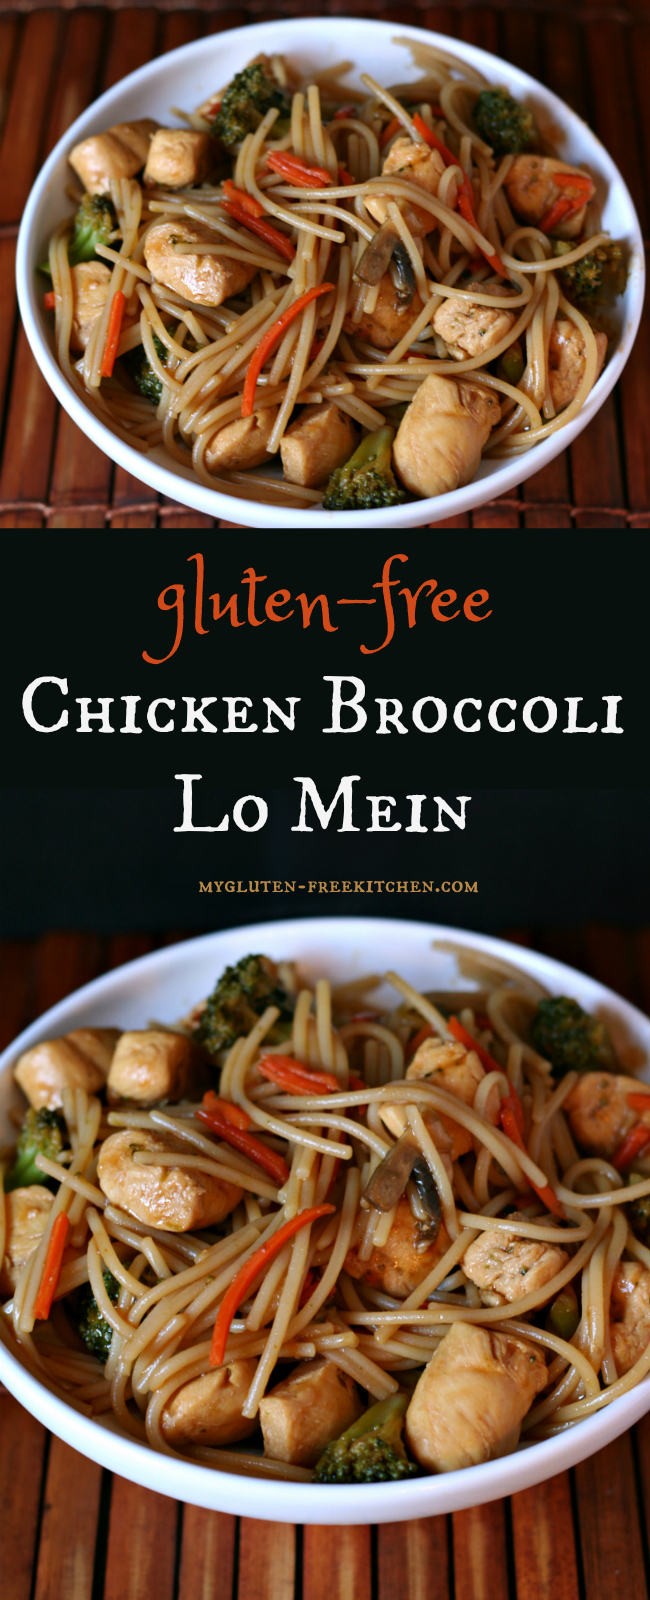 Gluten-free Chicken Broccoli Lo Mein Recipe